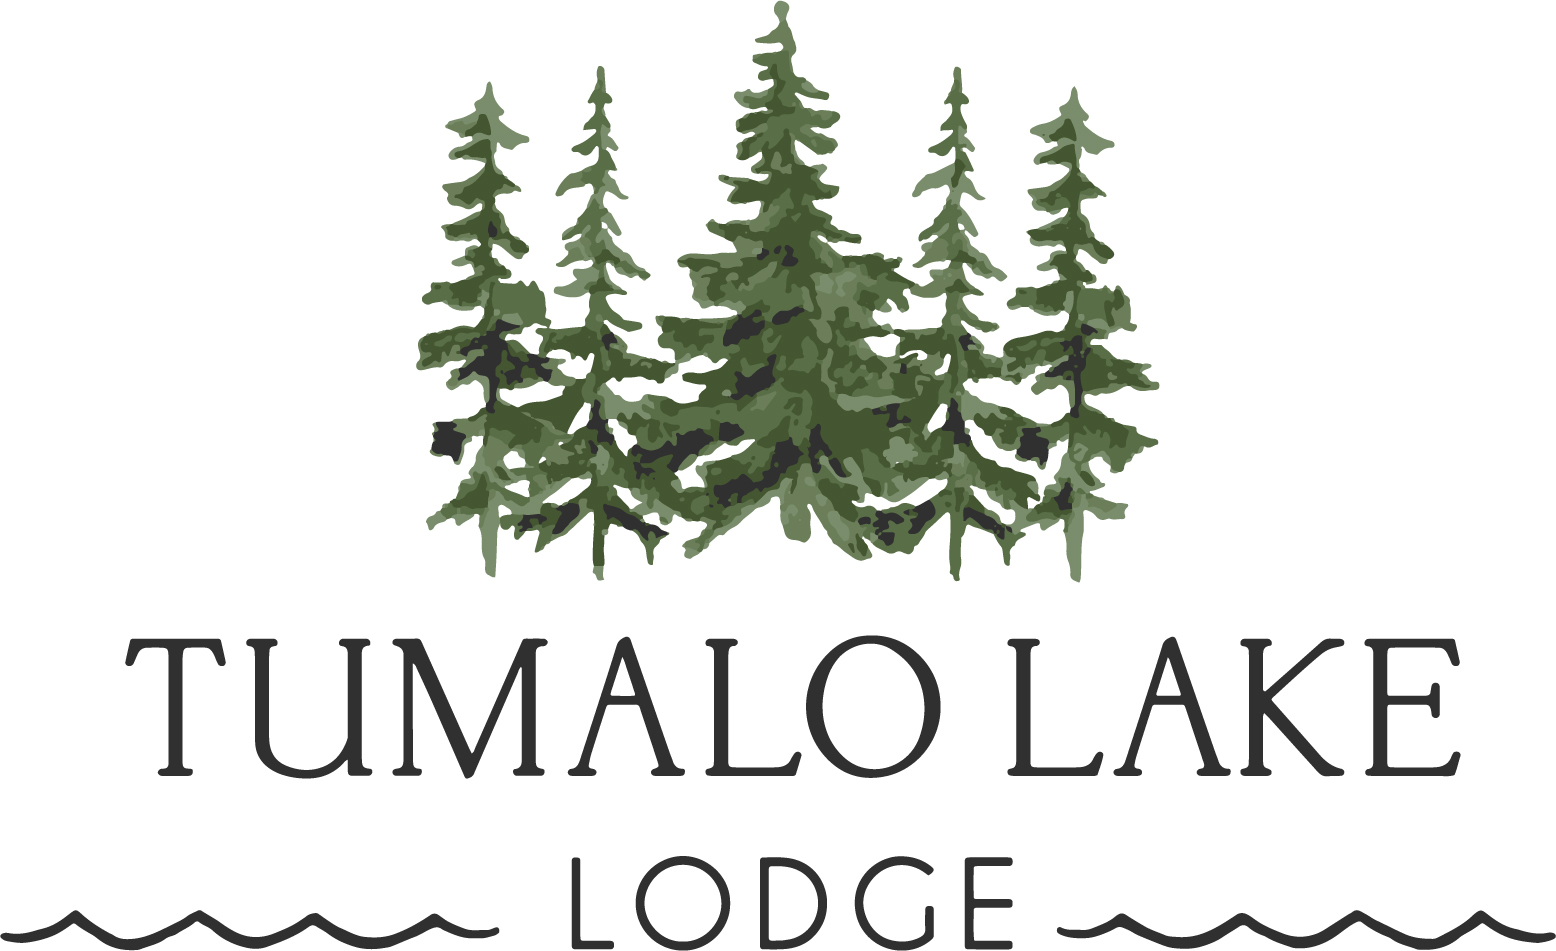 TUMALO LAKE LODGE